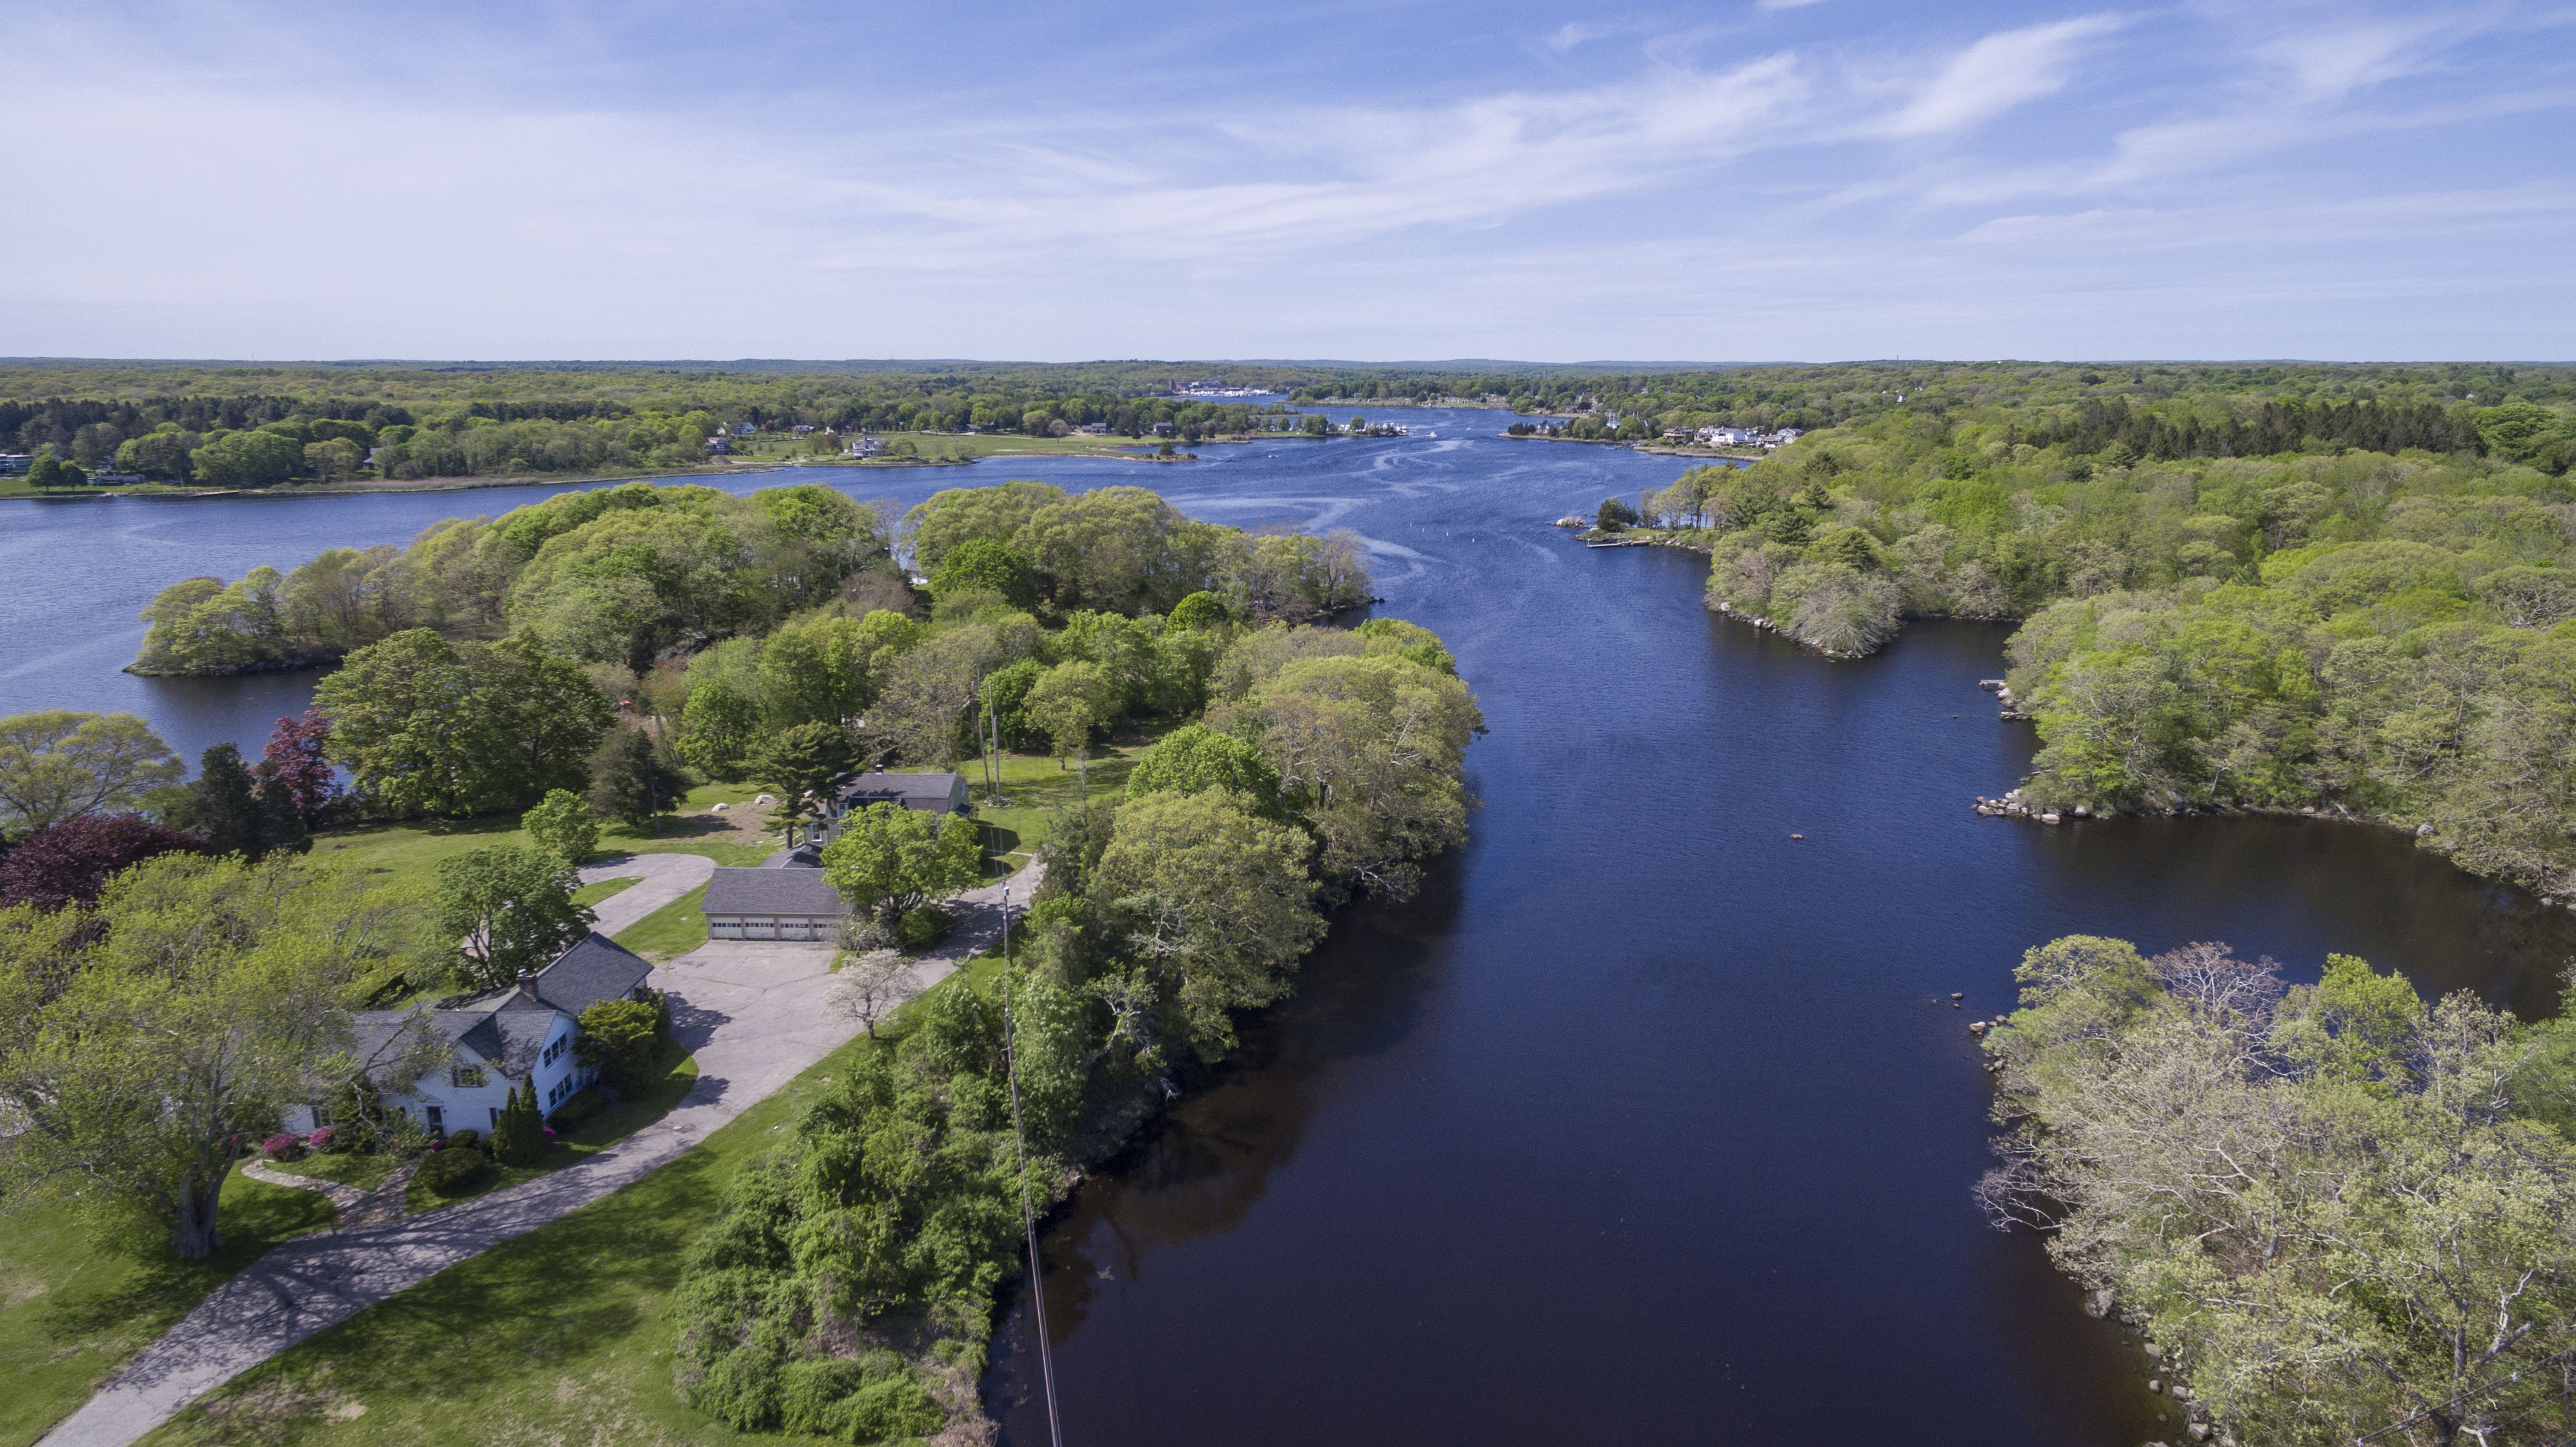 Residential Compound On Pawcatuck River Sells For $2.5 Million